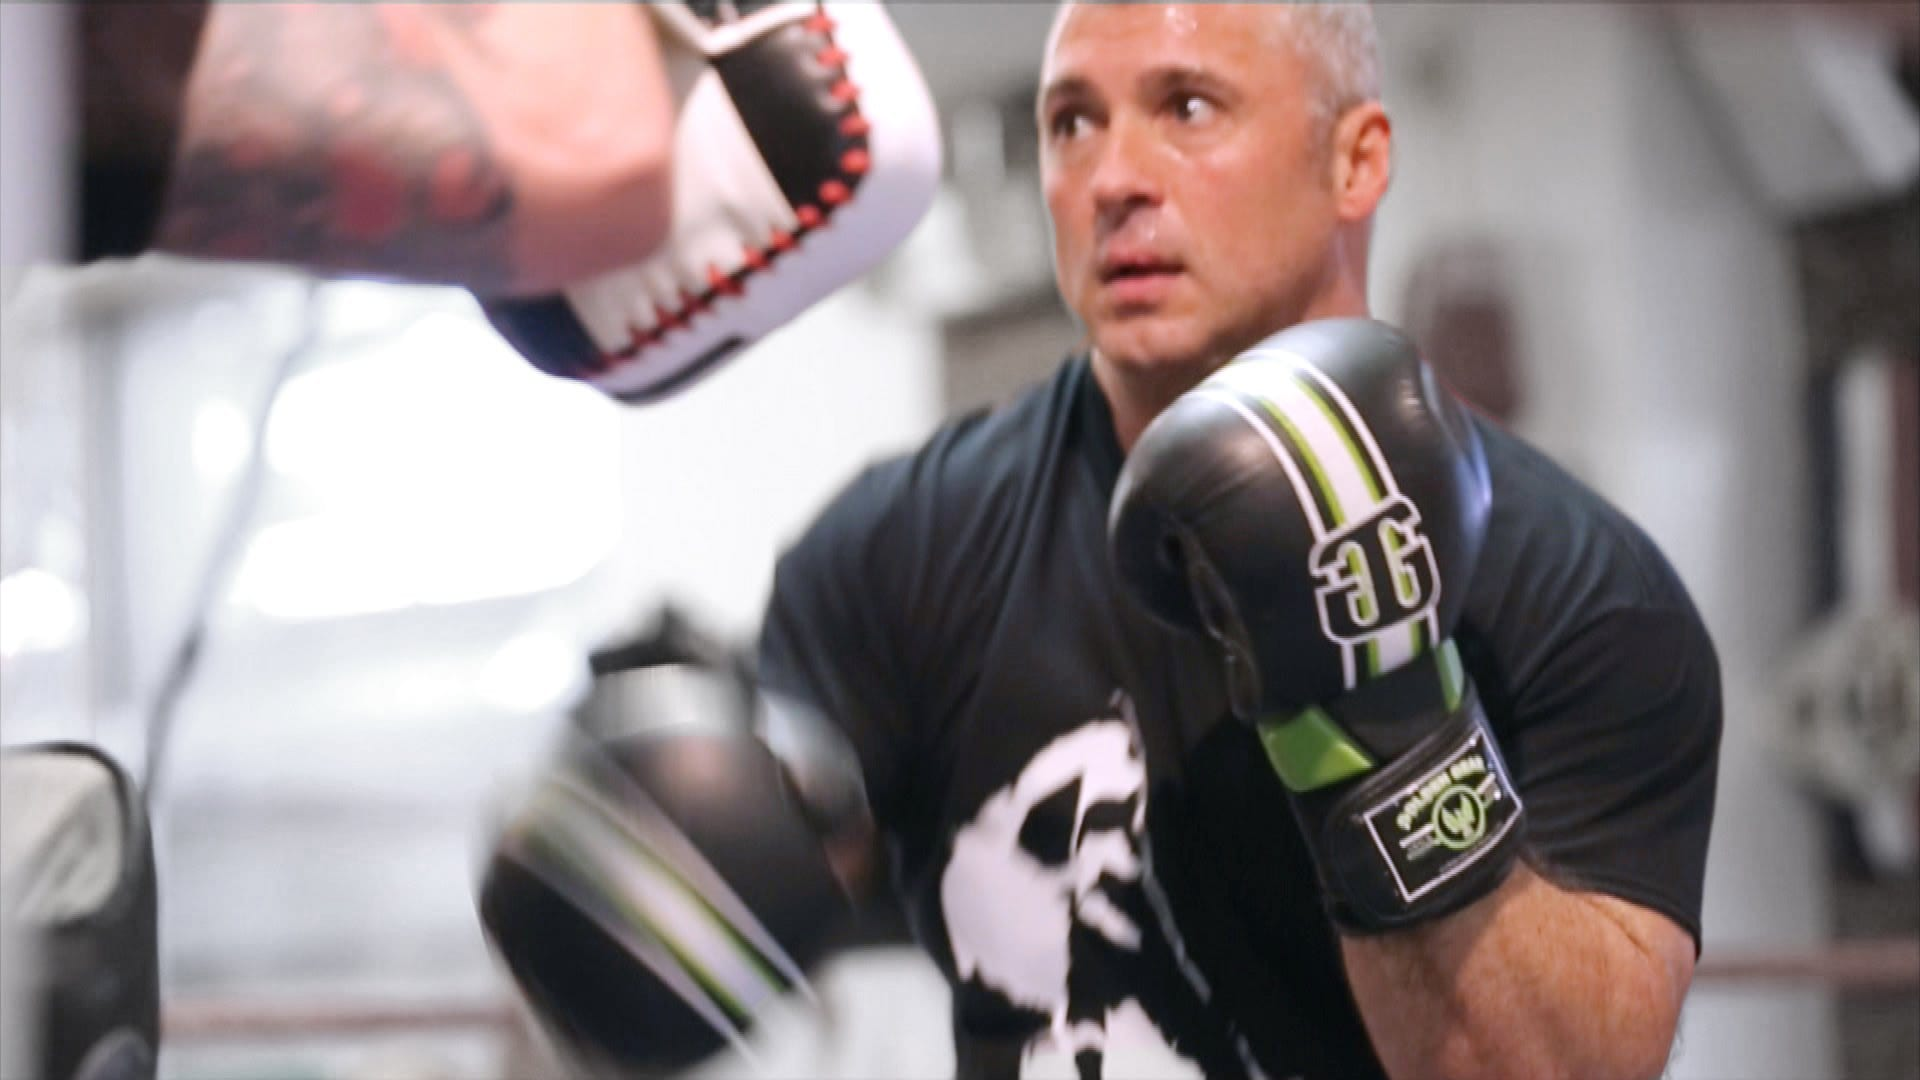 Tommy Dreamer & Bubba Ray Dudley Think Shane McMahon is a real bada$$ and would choke out & KO fighters in UFC